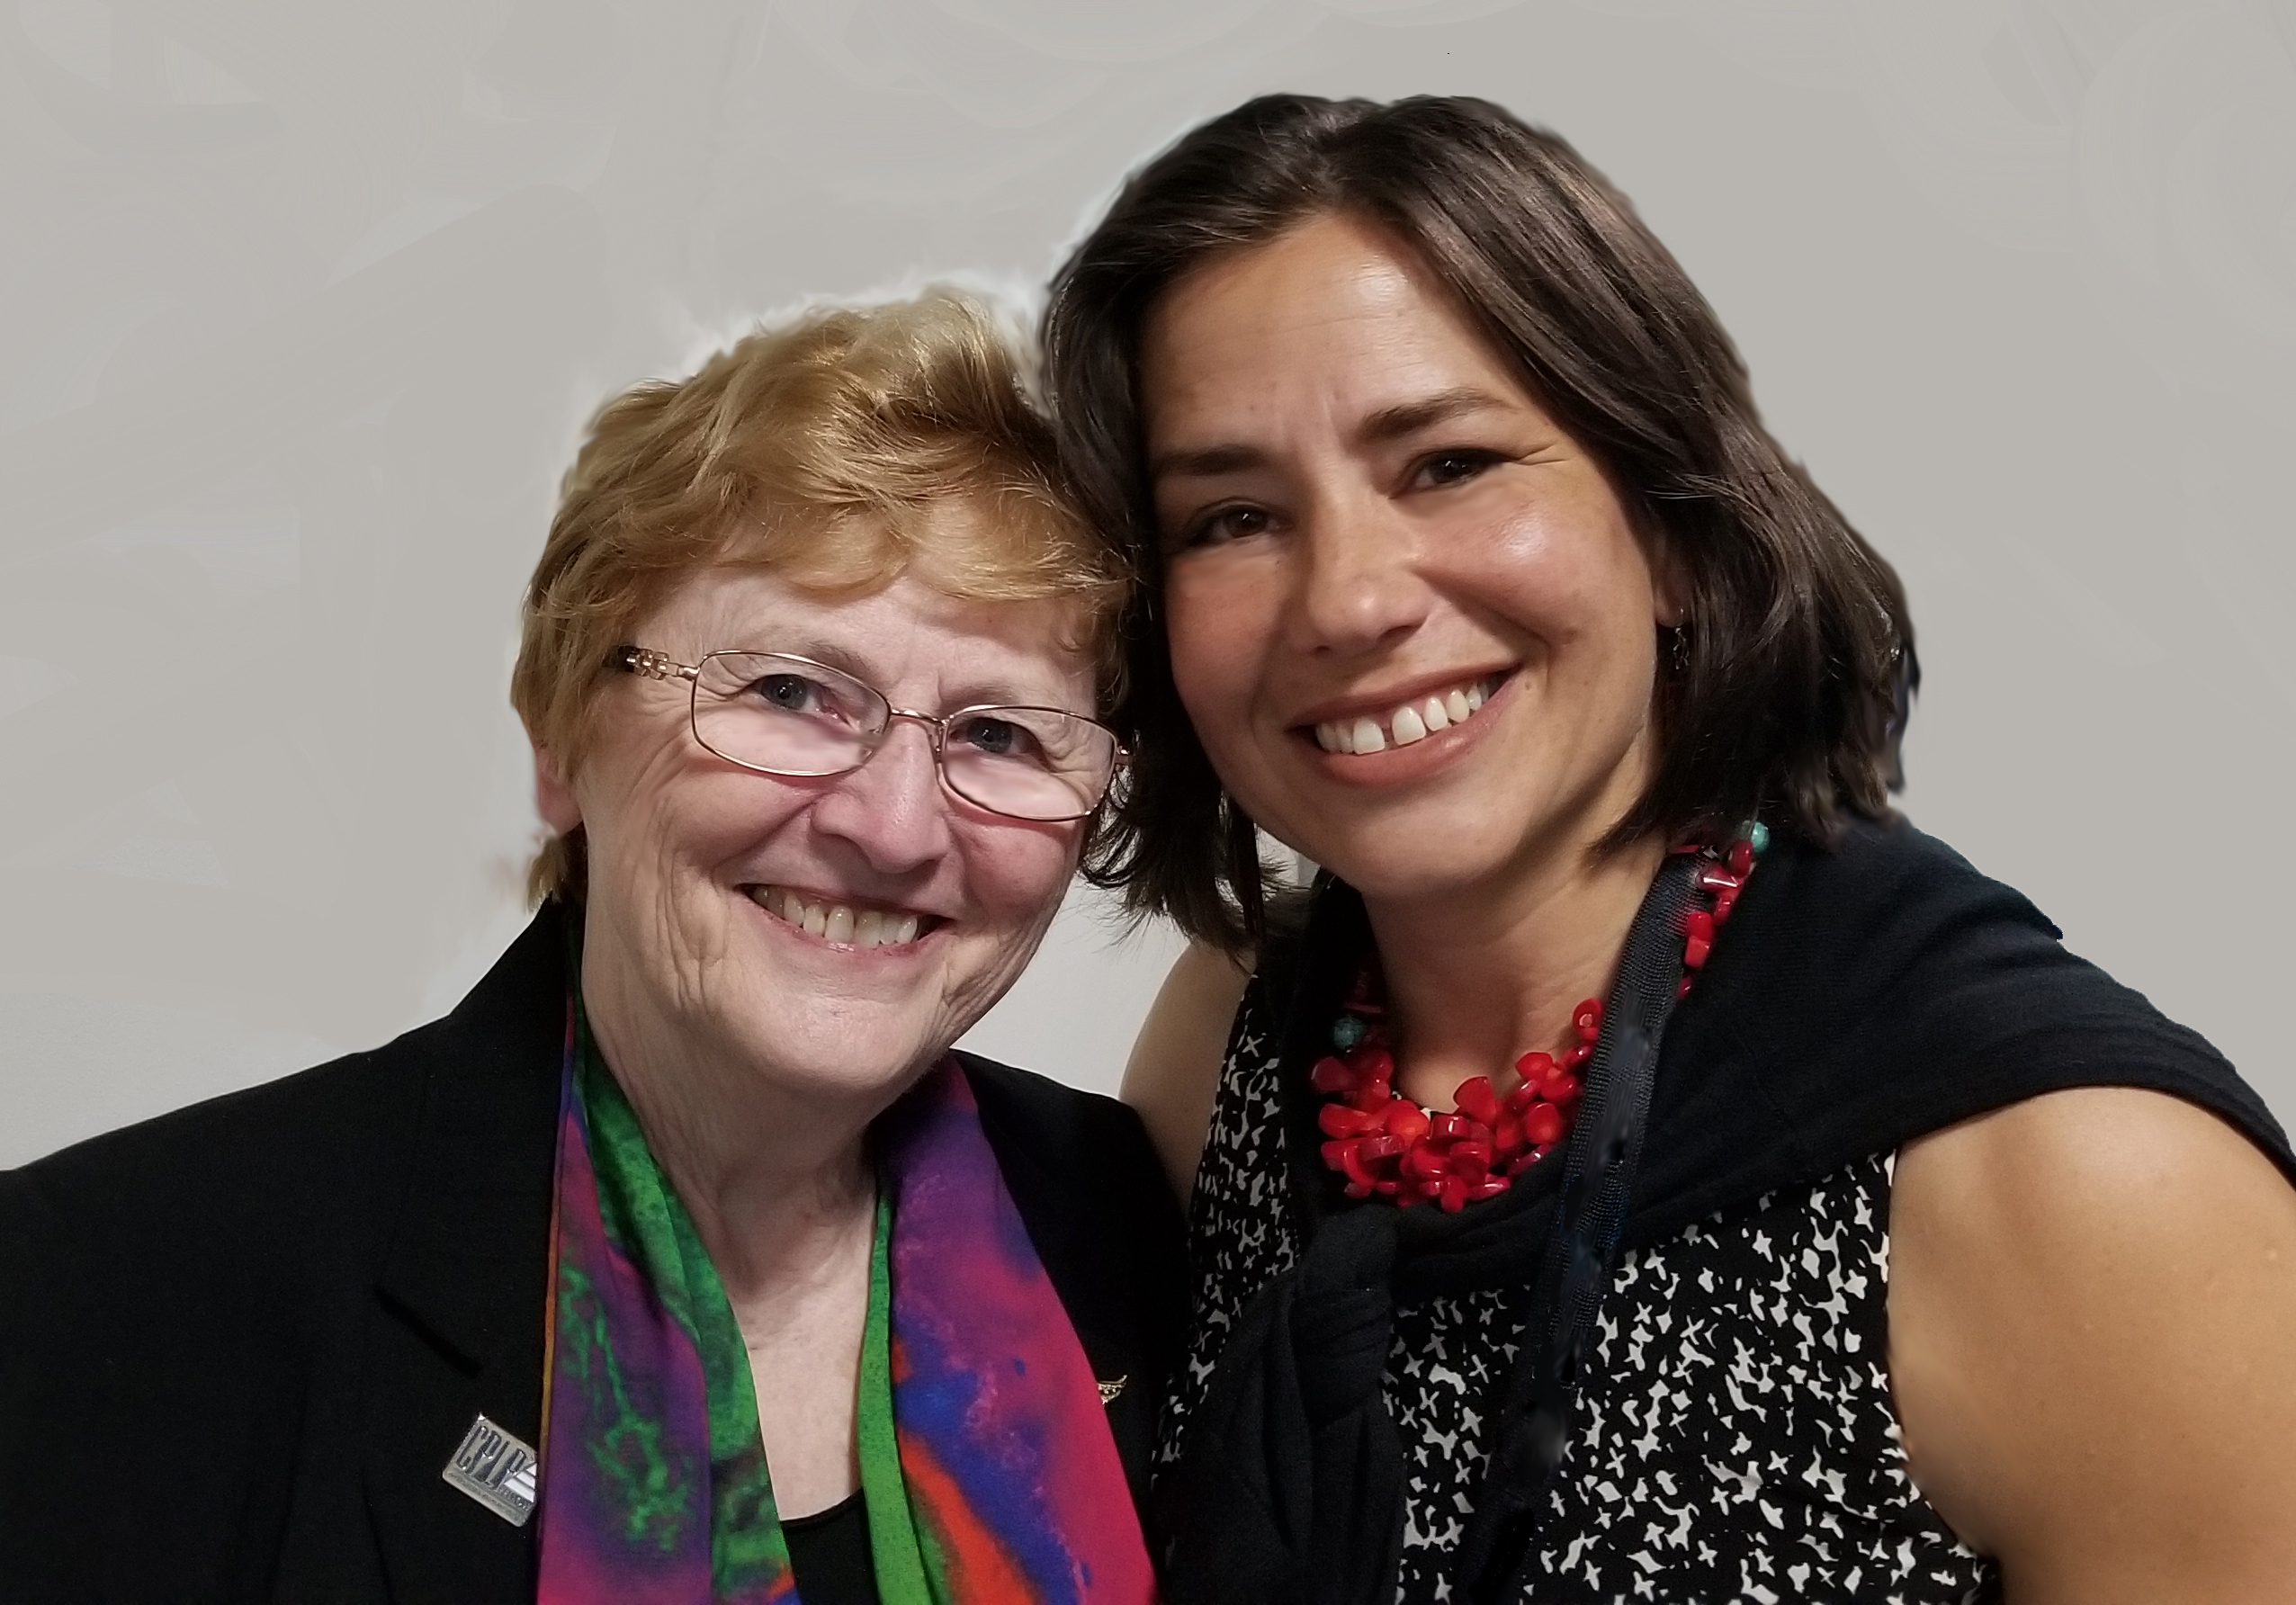 Elaine Biech and Halelly Azulay